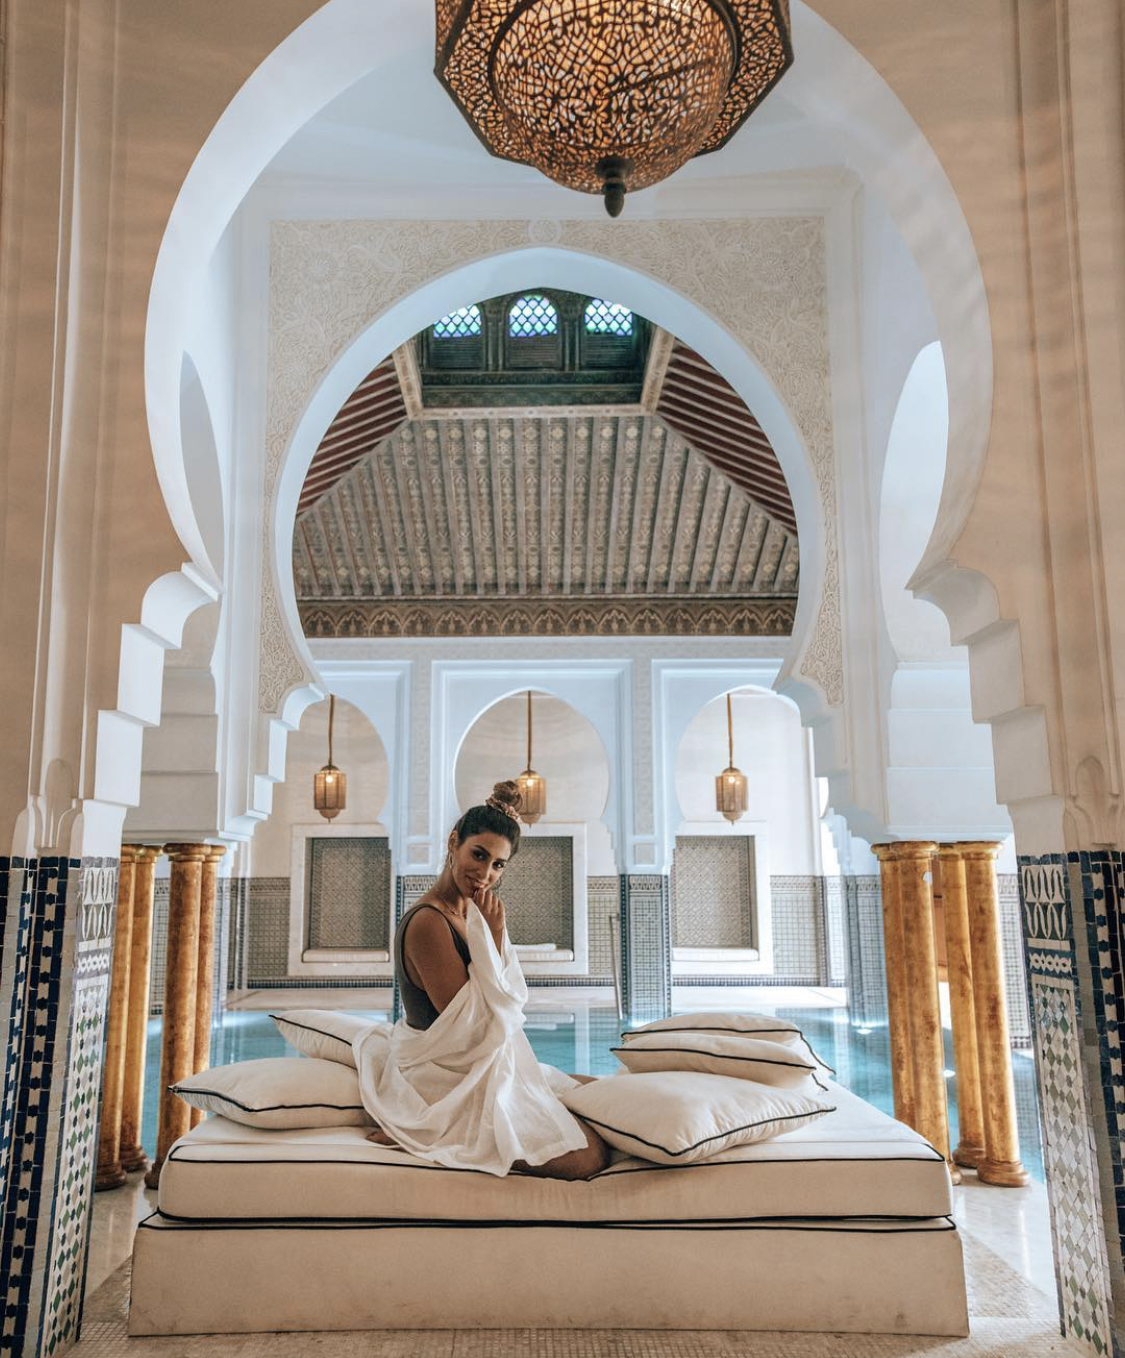 Woman in the spa at a hotel in Marrakech, Morocco